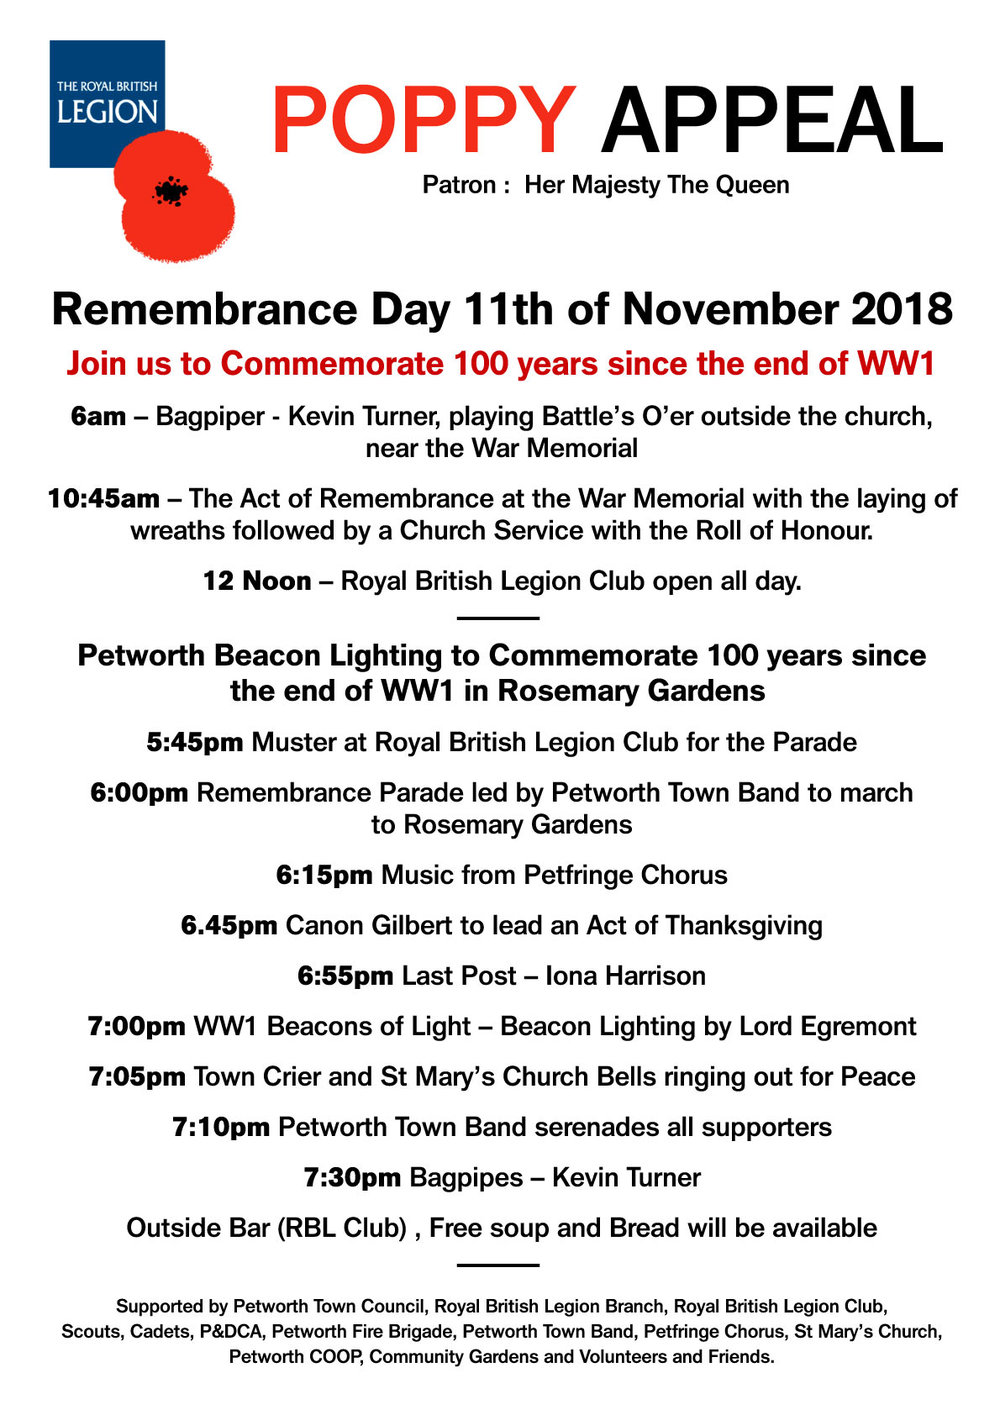 Remembrance Sunday in Petworth